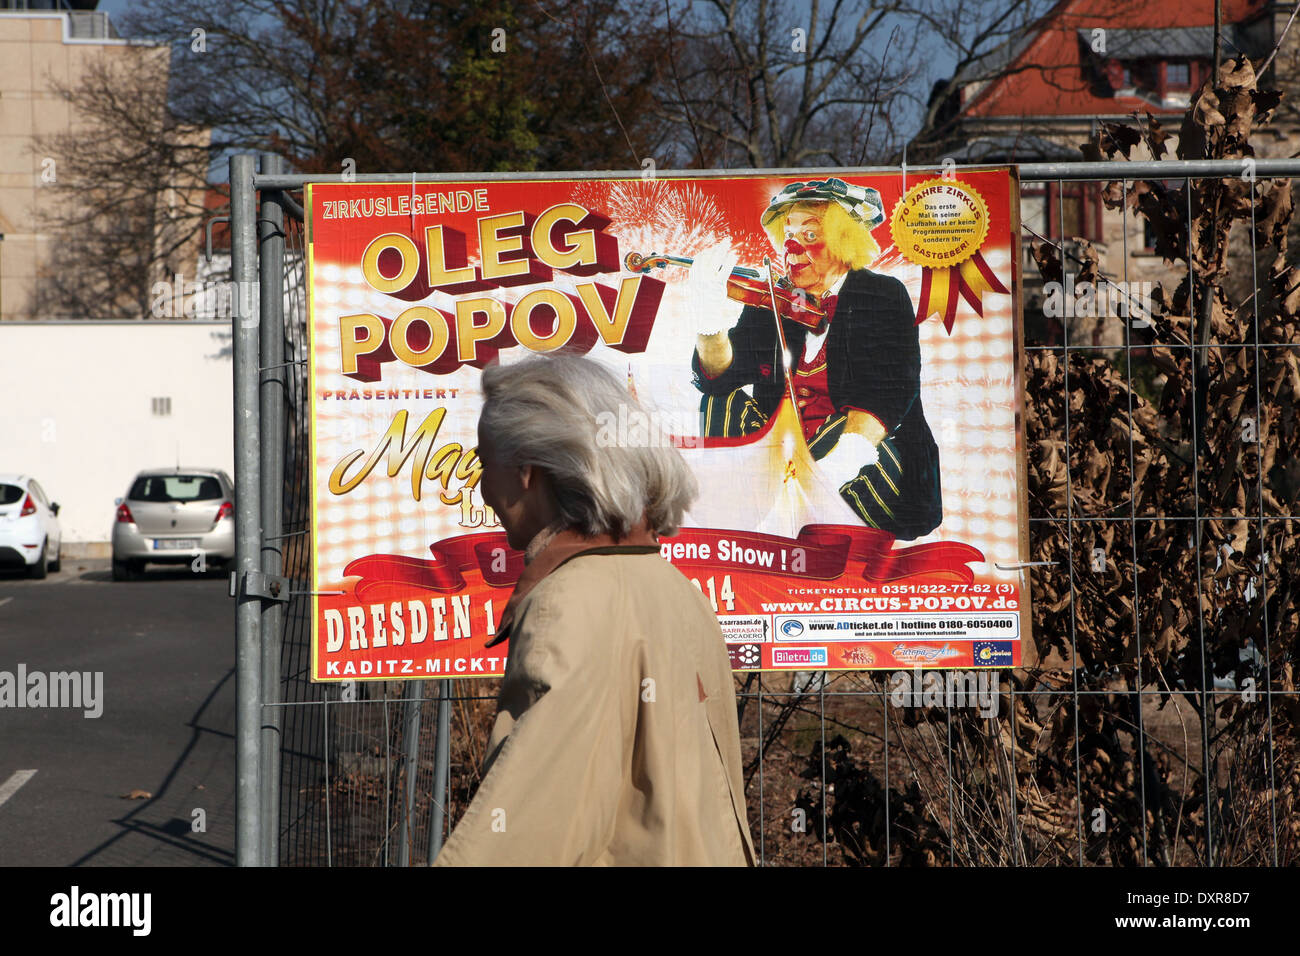 A poster for the new show 'Magic Life' of famous Russian clown Oleg Popov seen in Dresden, Germany. - Stock Image